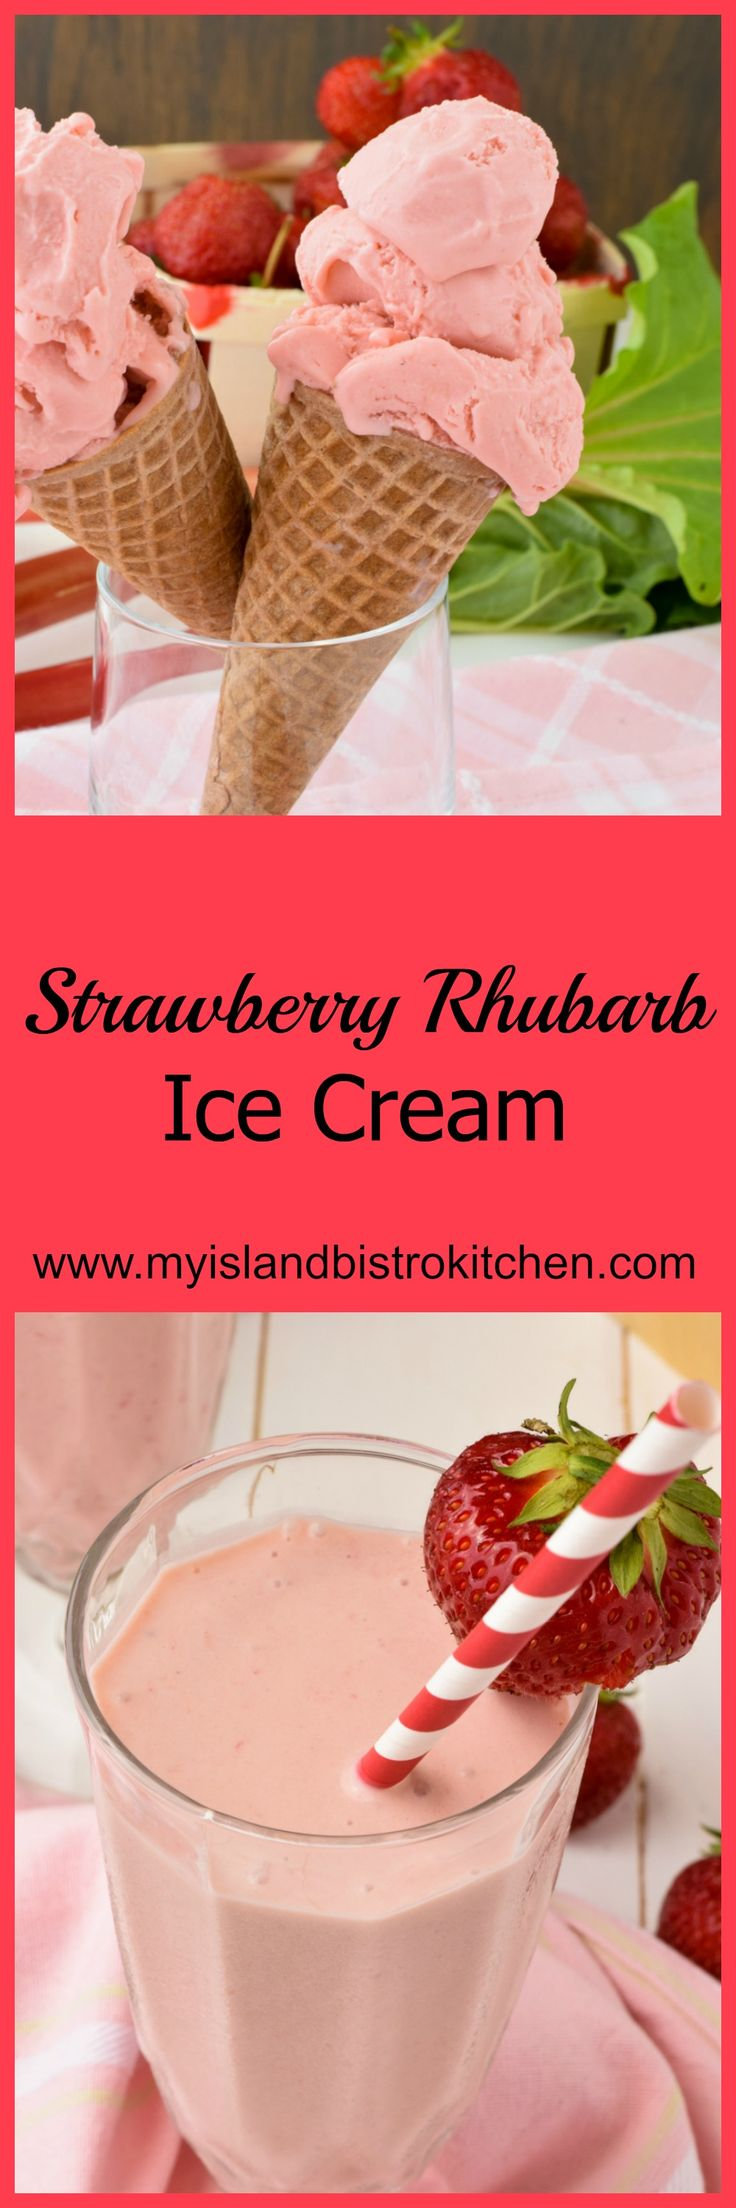 Delectable old-fashioned homemade ice cream combines two of summer's best flavors - strawberry and rhubarb.